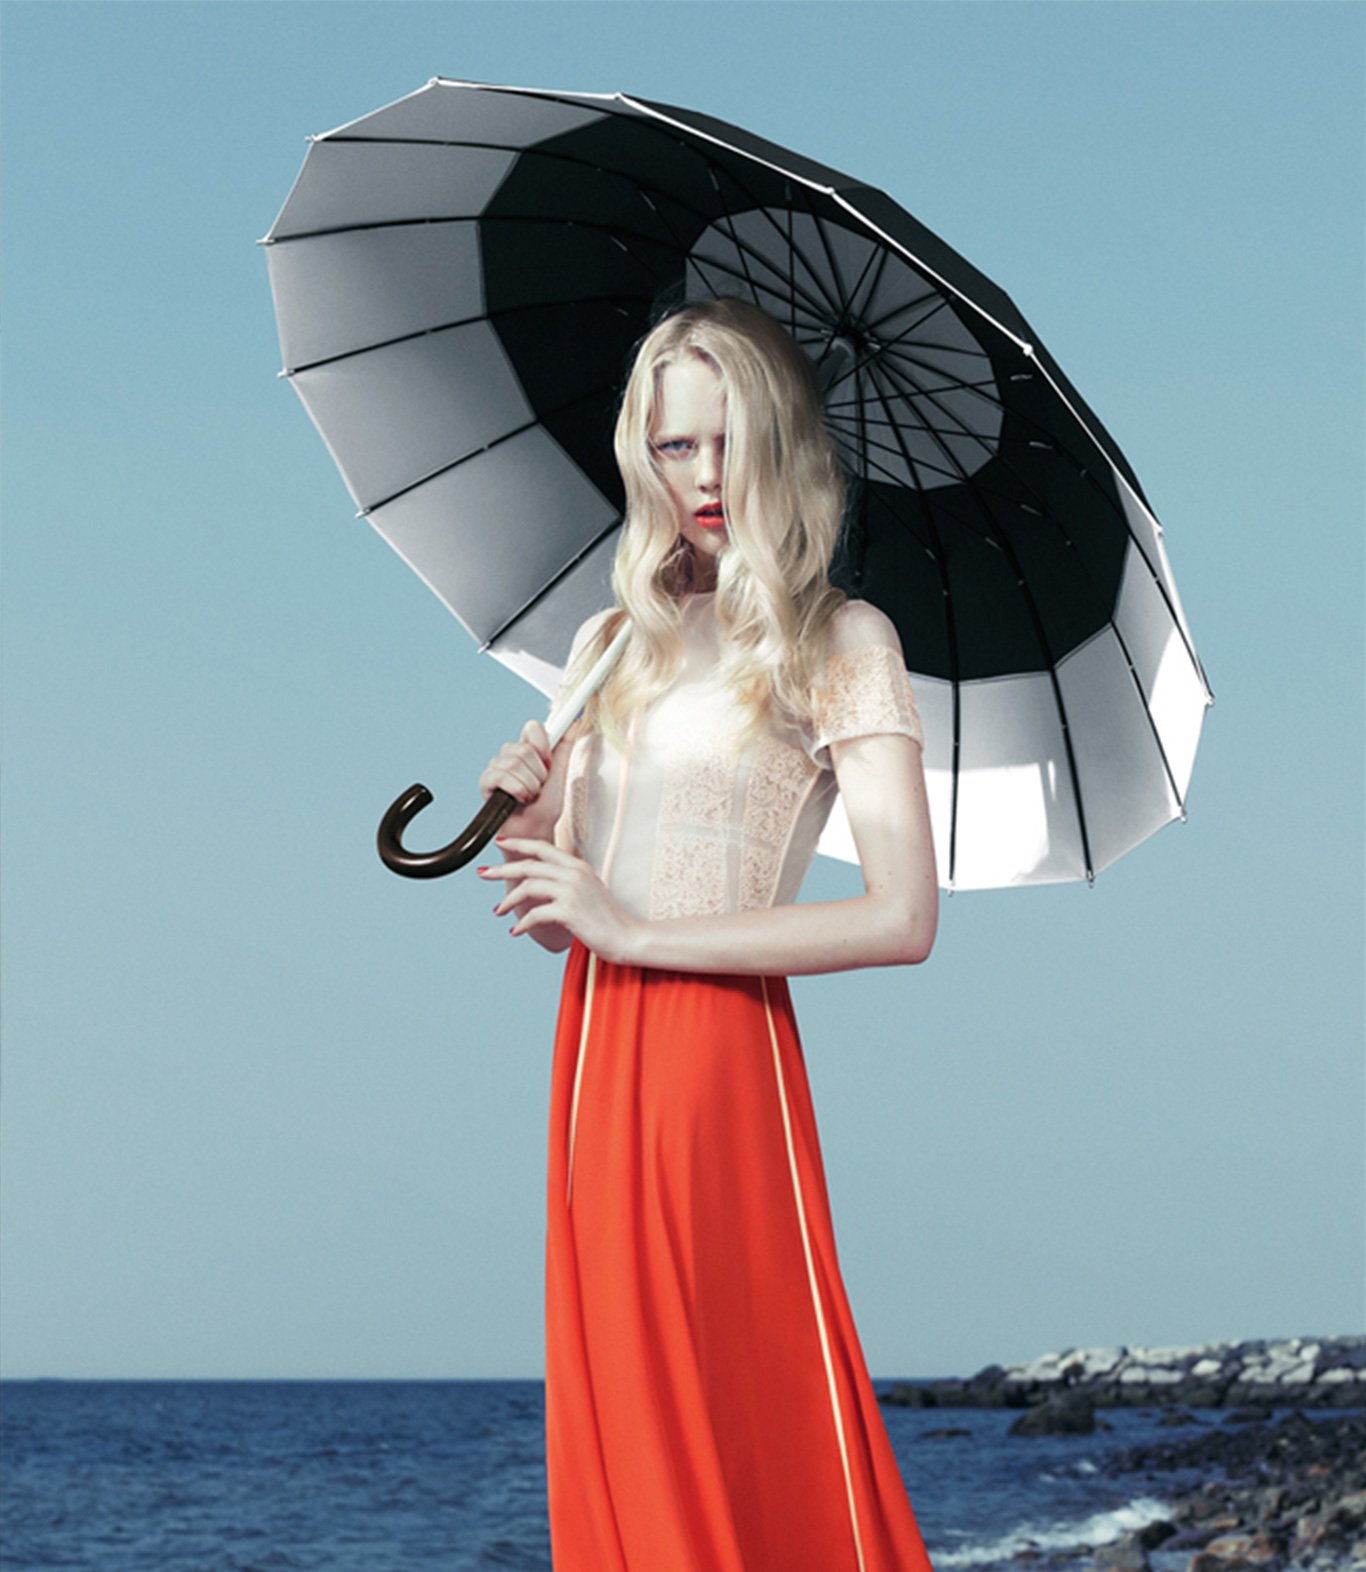 Model in white and red Honor outfit, Art Direction by RoAndCo